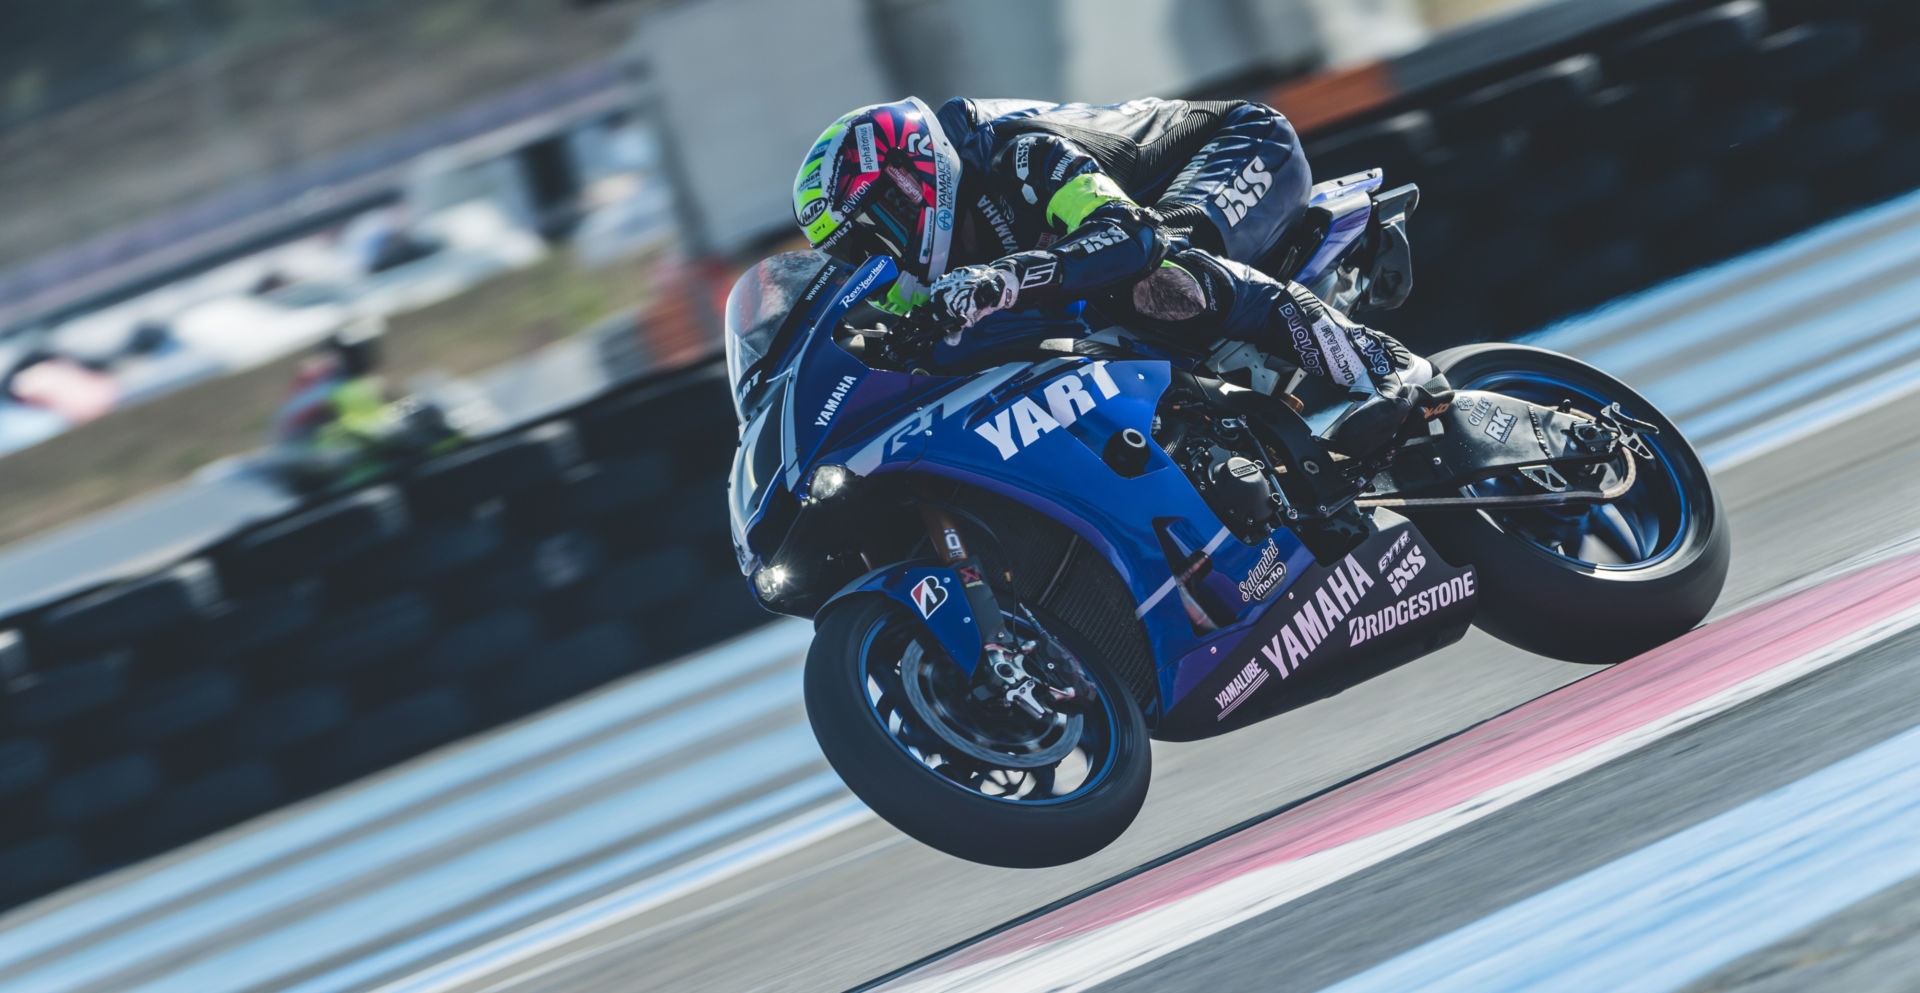 YART Yamaha (7) in action at the Bol d'Or 24-hour race, Round One of the 2019-2020 FIM Endurance World Championship. Photo courtesy of Yamaha.